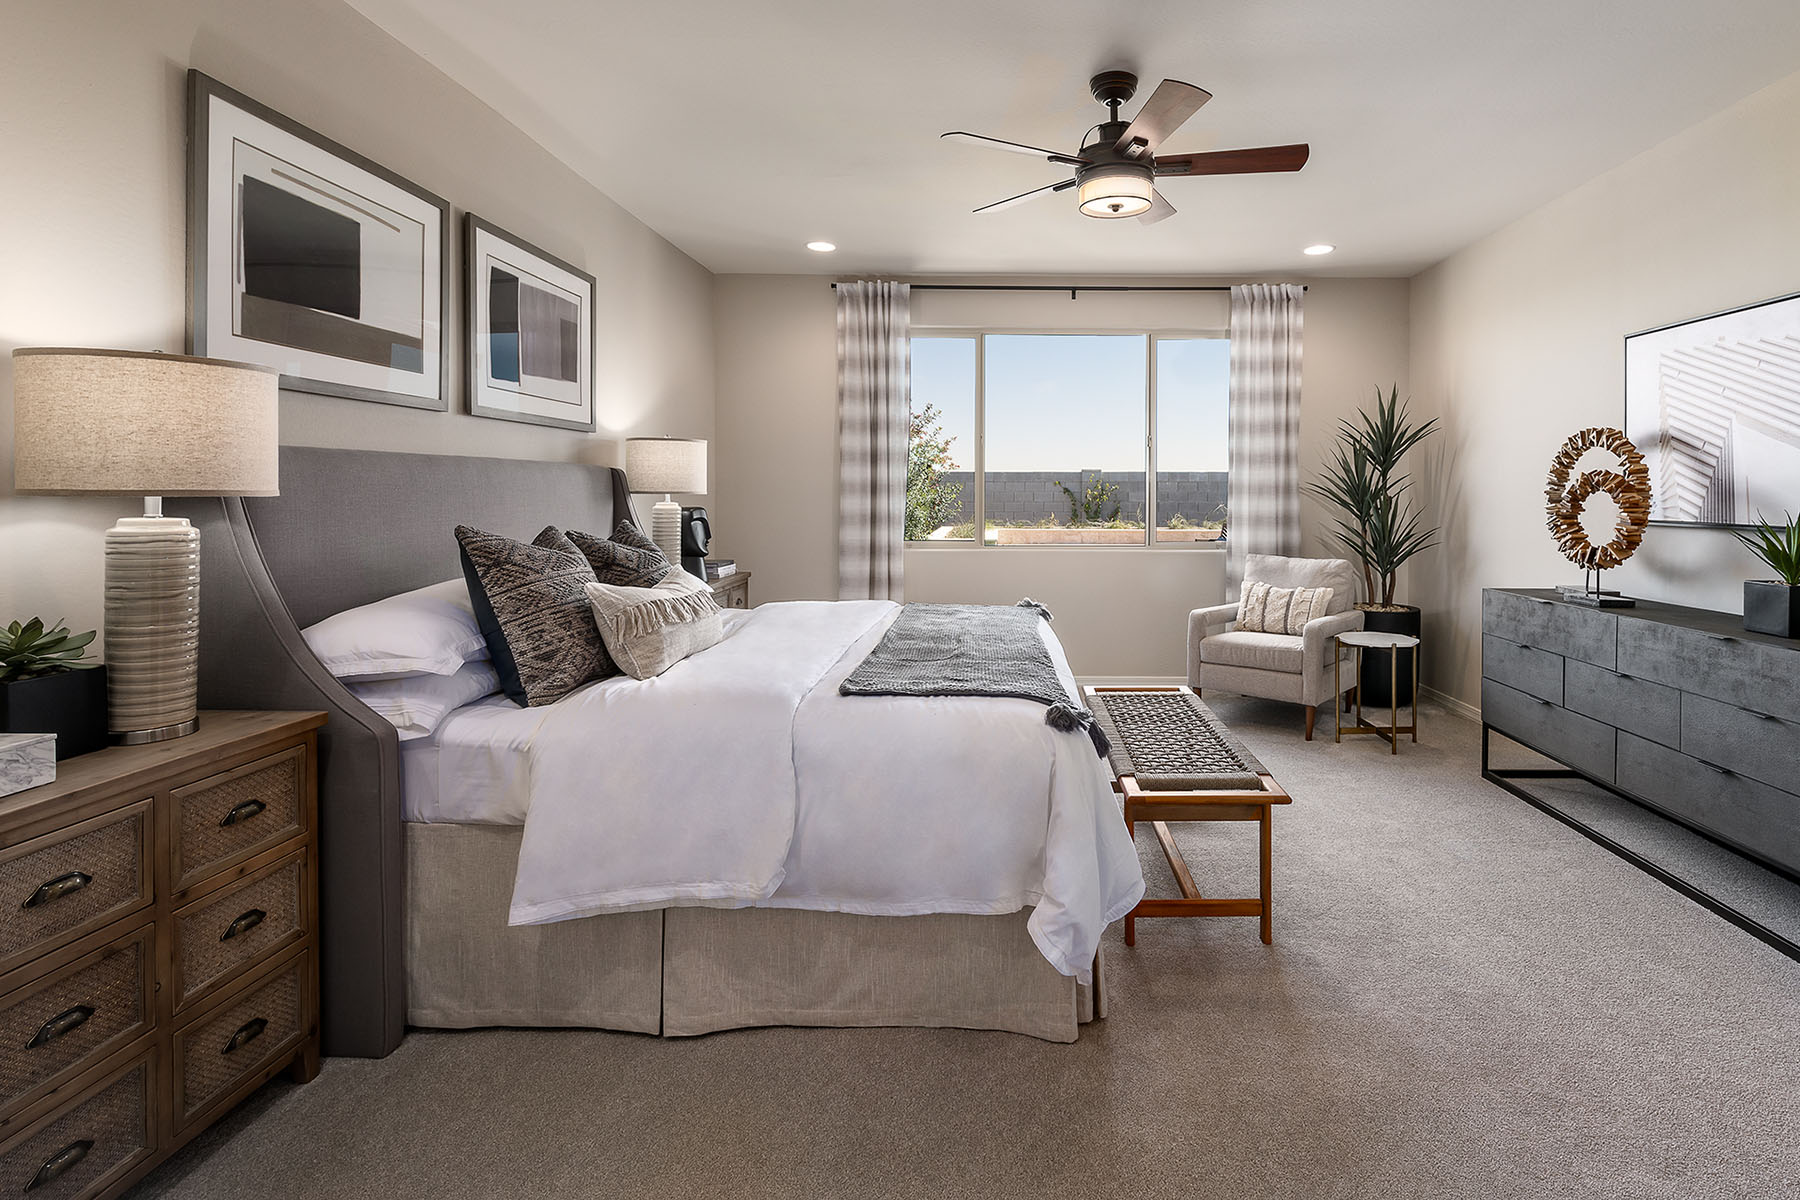 Azure Canyon Bedroom in Litchfield Park Arizona by Mattamy Homes